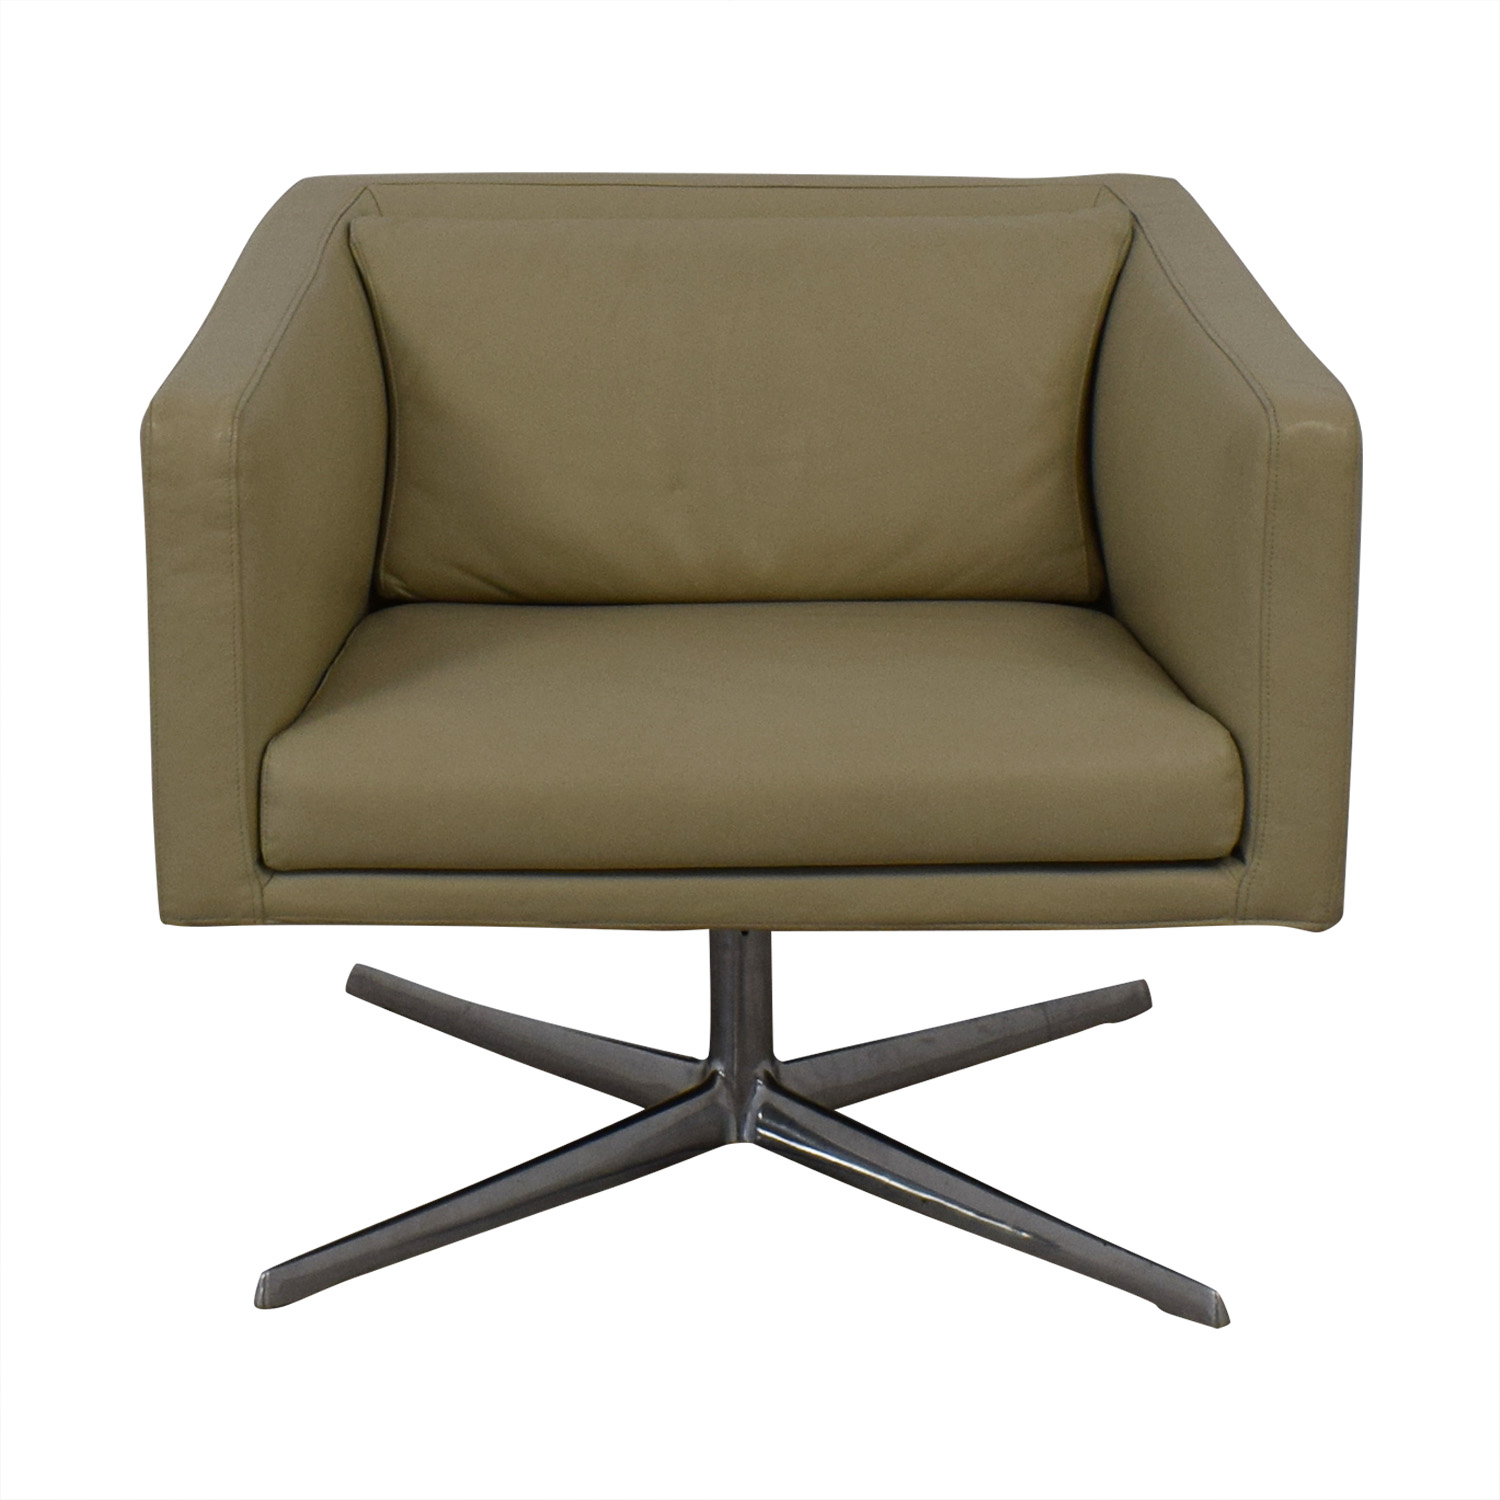 Verzelloni Verzelloni Cubica Armchair on sale